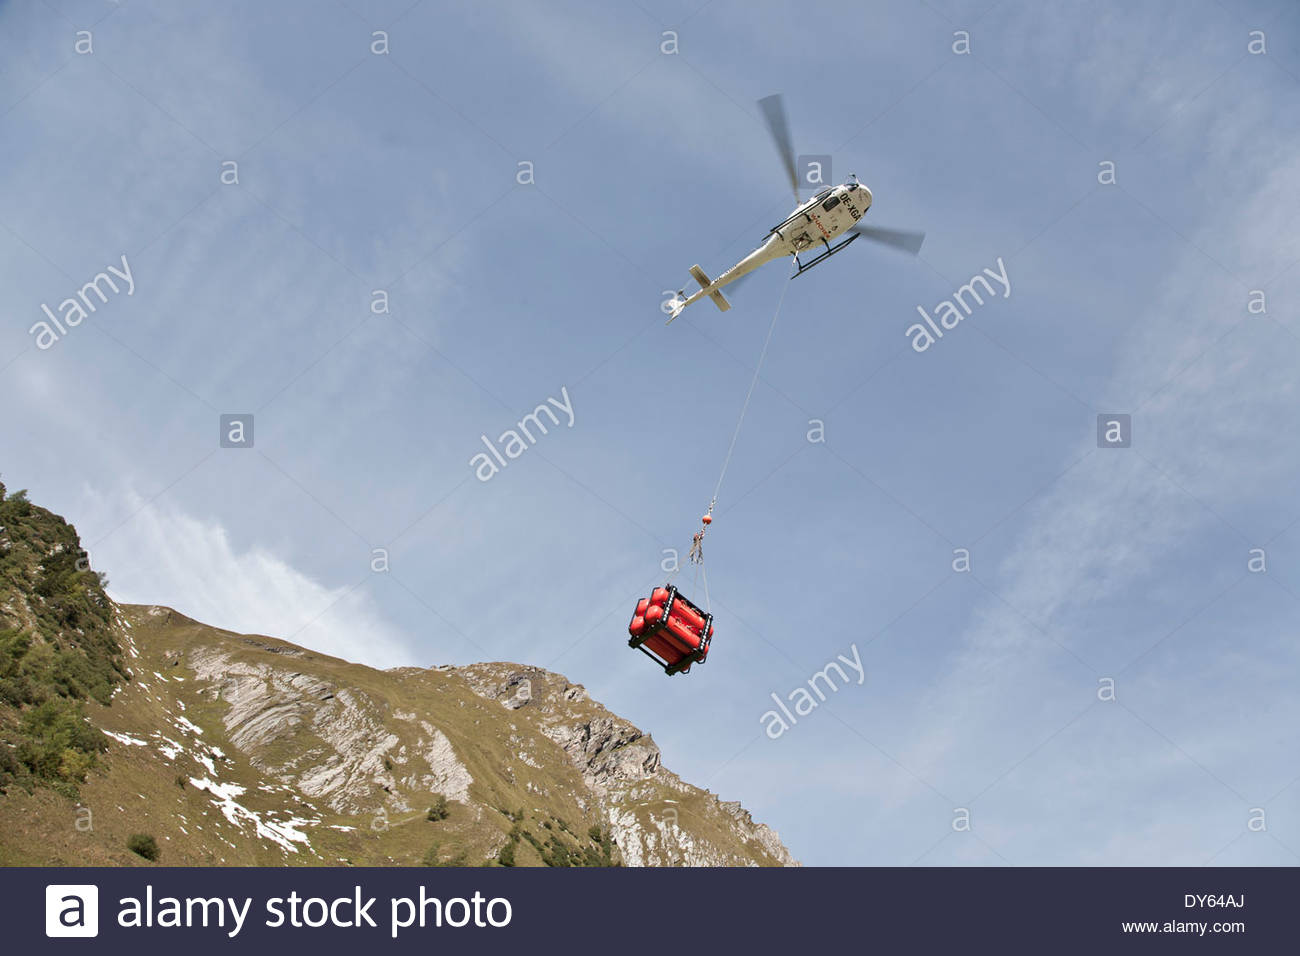 Helicopter flys gas tanks towards the Stuedlhut, supply air, Grossglockner, Karls on the Grossglockner, Hohe Tauern, Austria - Stock Image